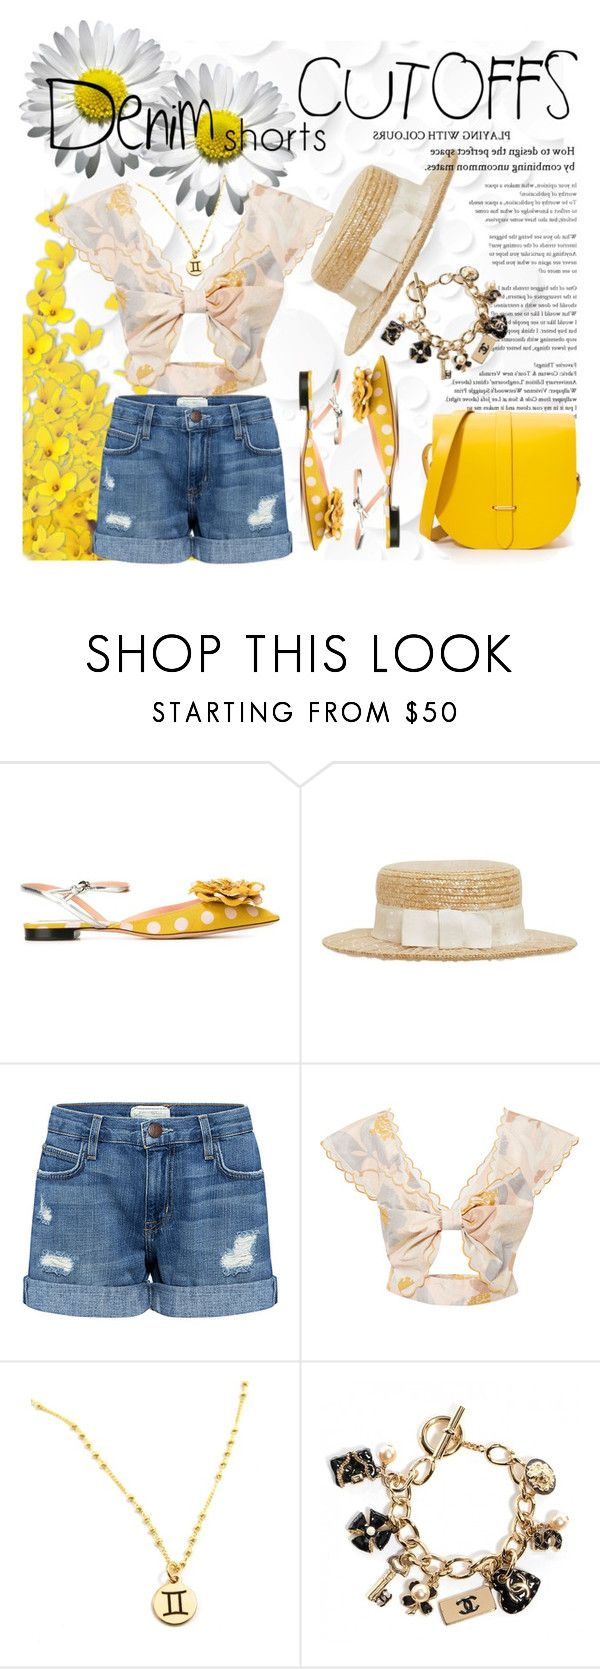 """""""Denim shorts - preppy style"""" by cool-cute ❤ liked on Polyvore featuring Rochas, Kreisi Couture, Current/Elliott, Alice McCall, The Cambridge Satchel Company, jeanshorts, denimshorts and cutoffs"""